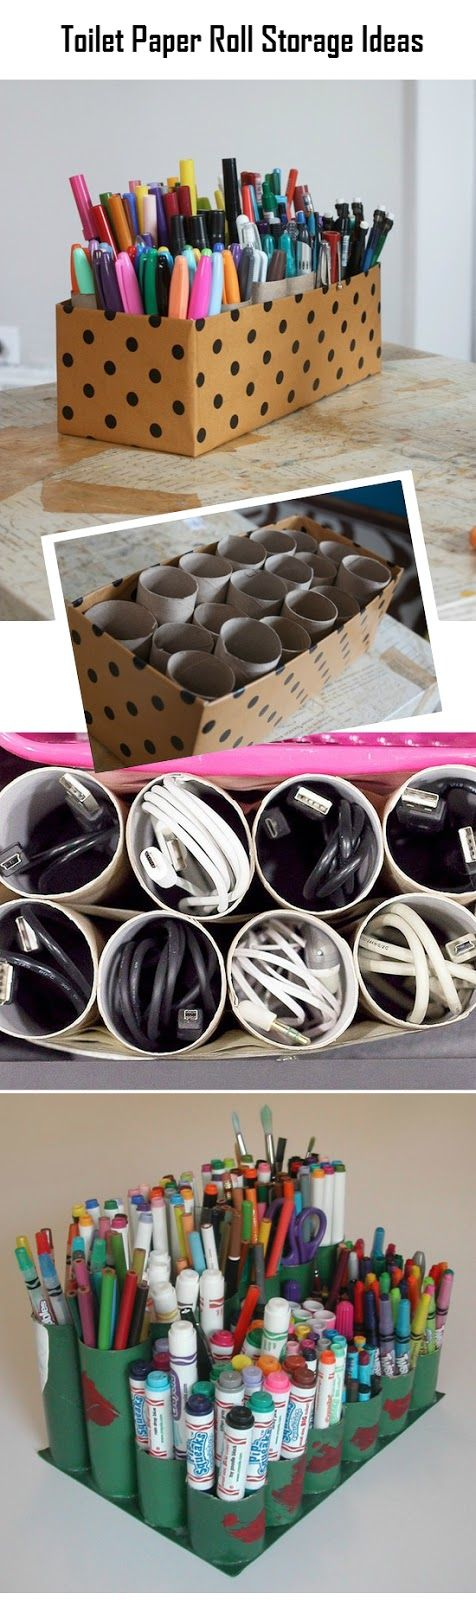 Toilet Paper Roll Storage Ideas Need one